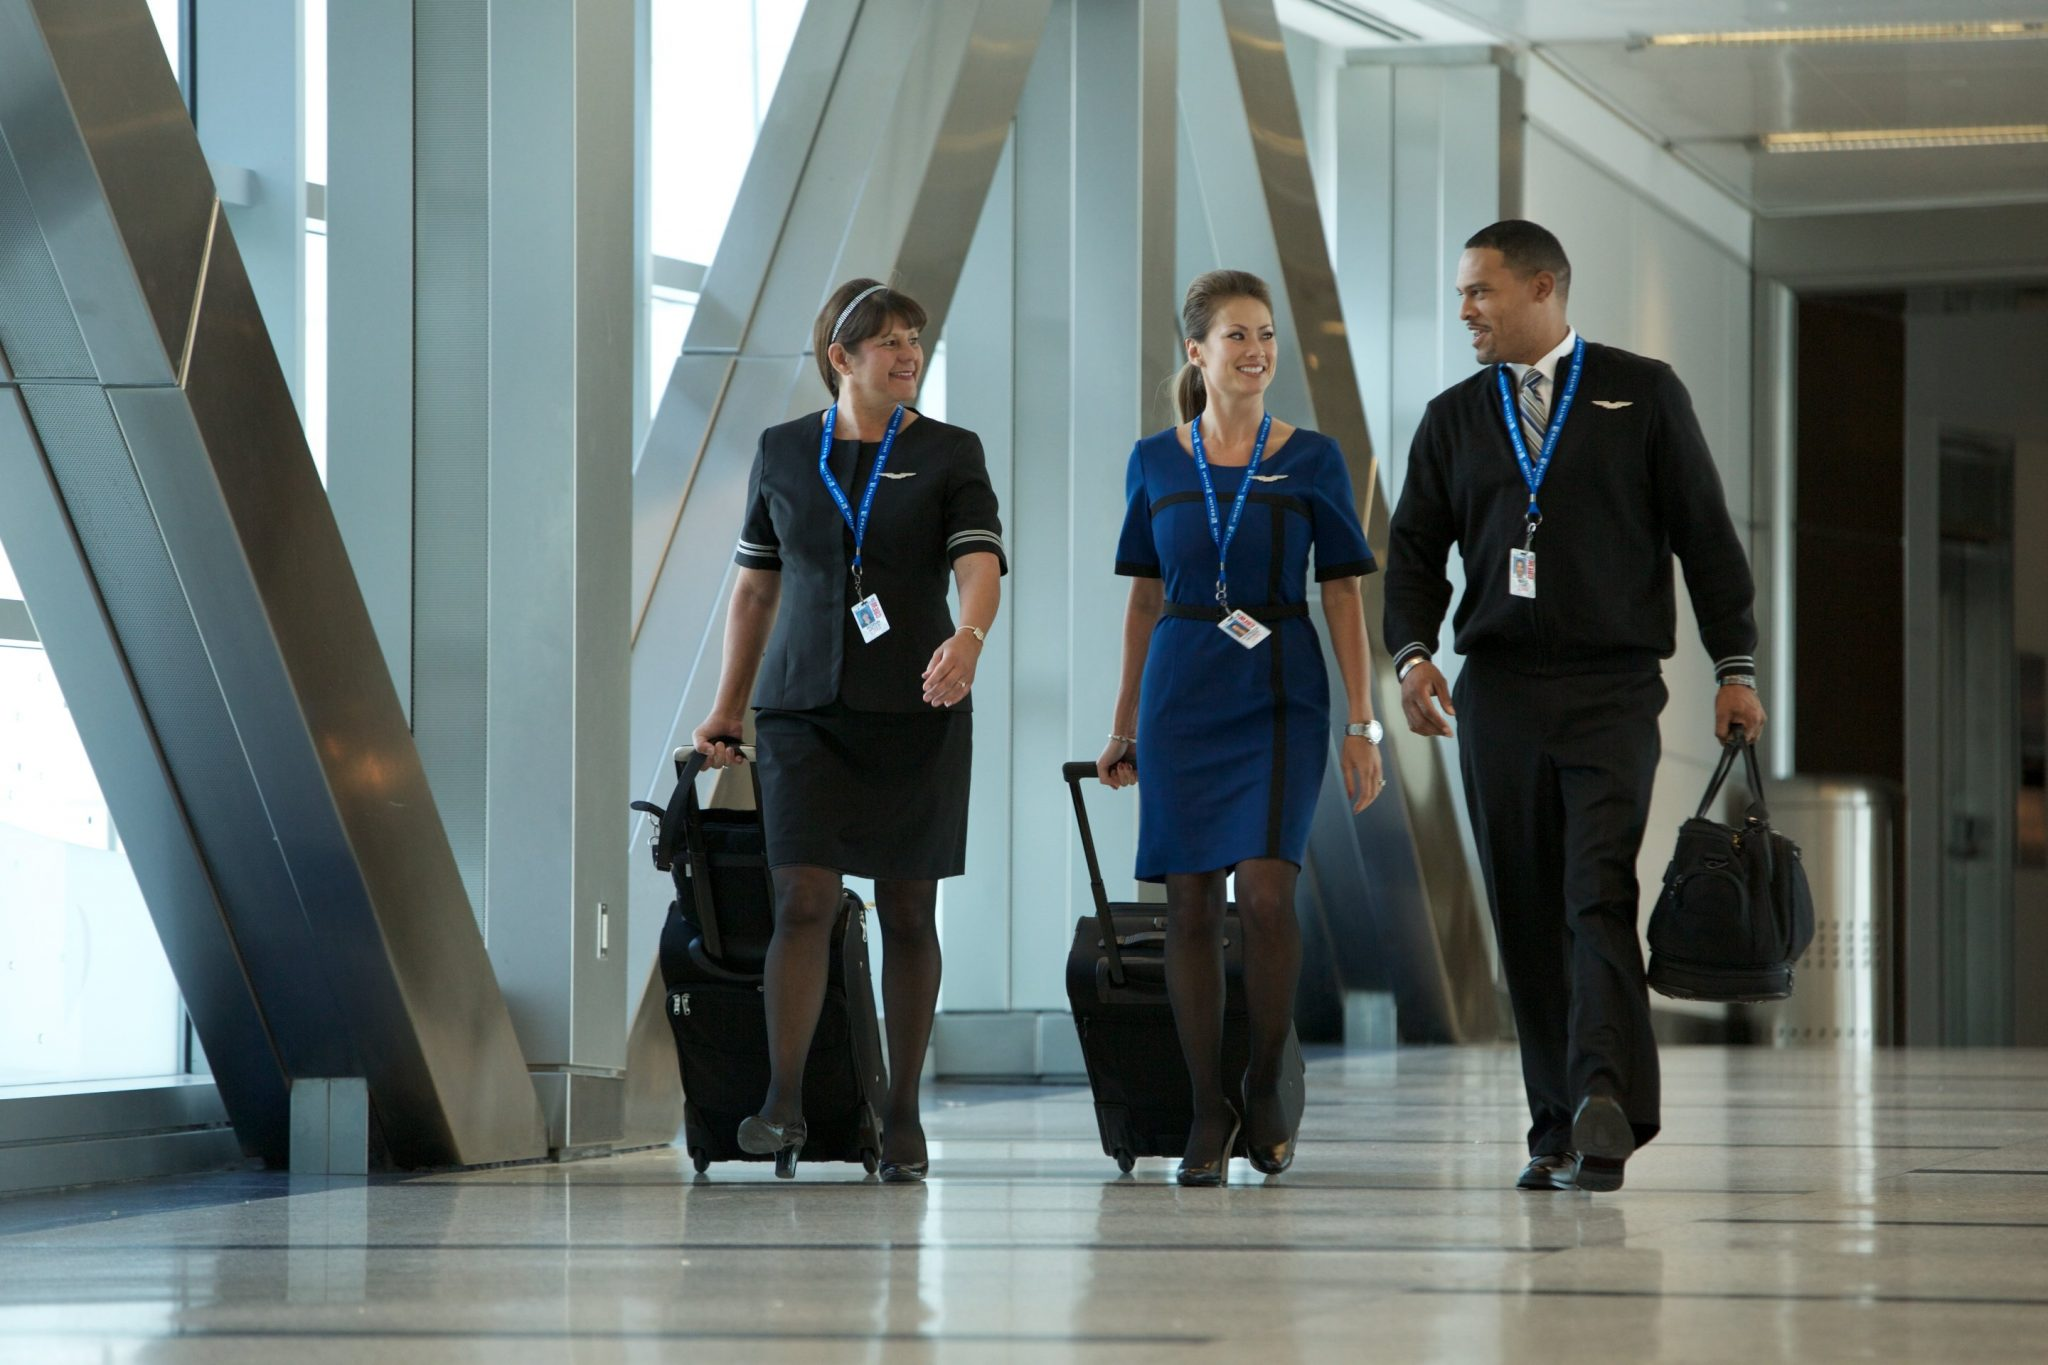 United Airlines Investigating Flight Attendants for Selling Sought After Trips to Colleagues